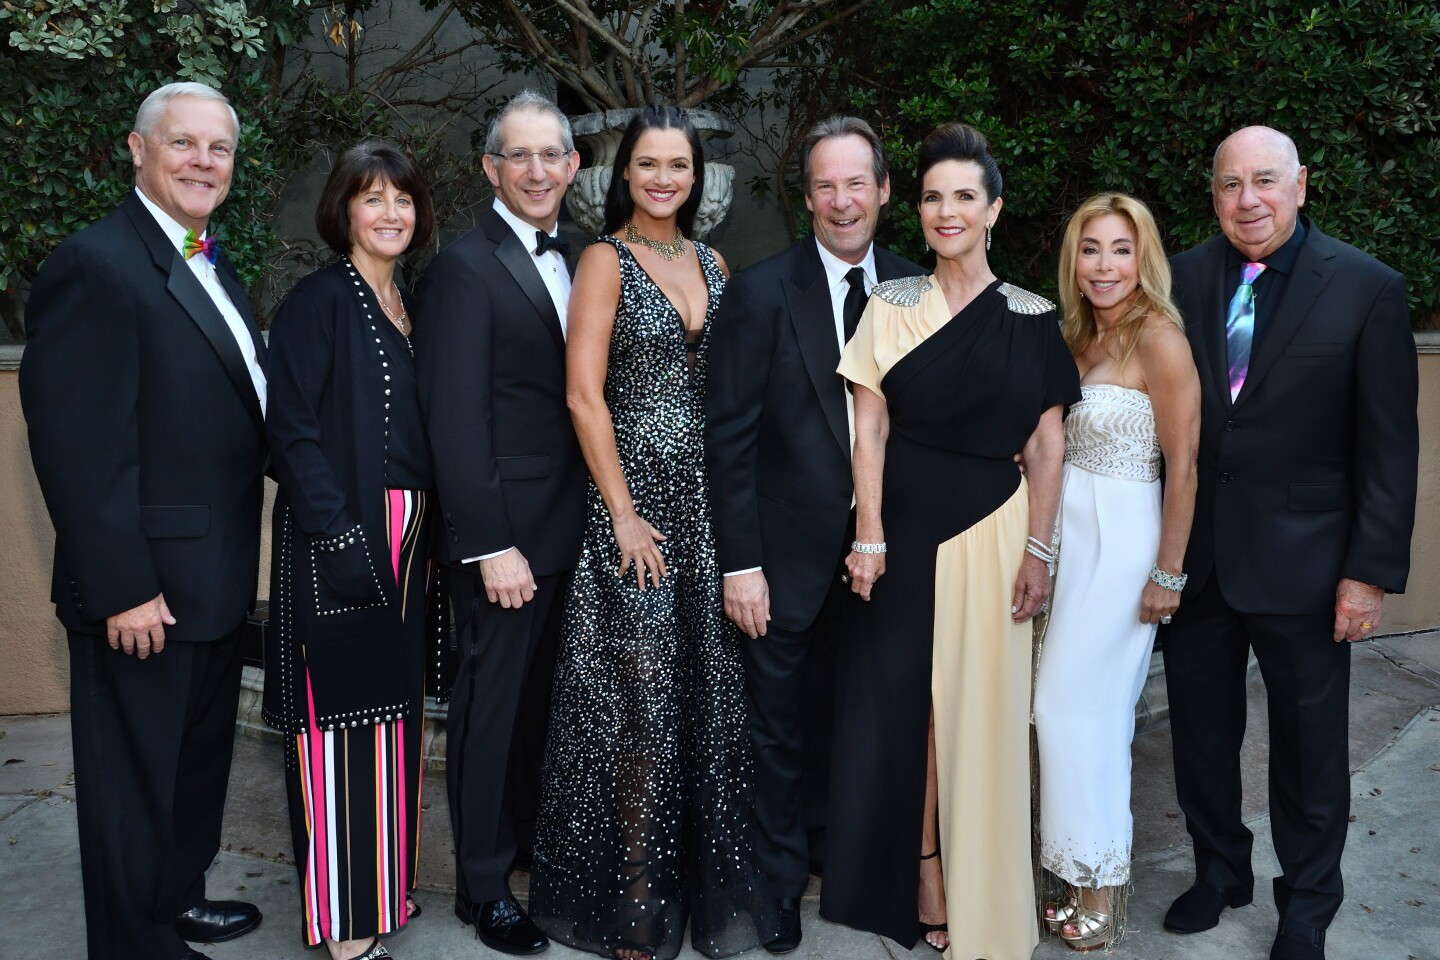 Timothy J. Shields (Globe managing director), Kim Klett, Barry and Hilit Edelstein (he's Globe artistic director), Stuart and Karen Tanz (she's gala co-chair), Ellise and Michael Coit (she's gala co-chair)